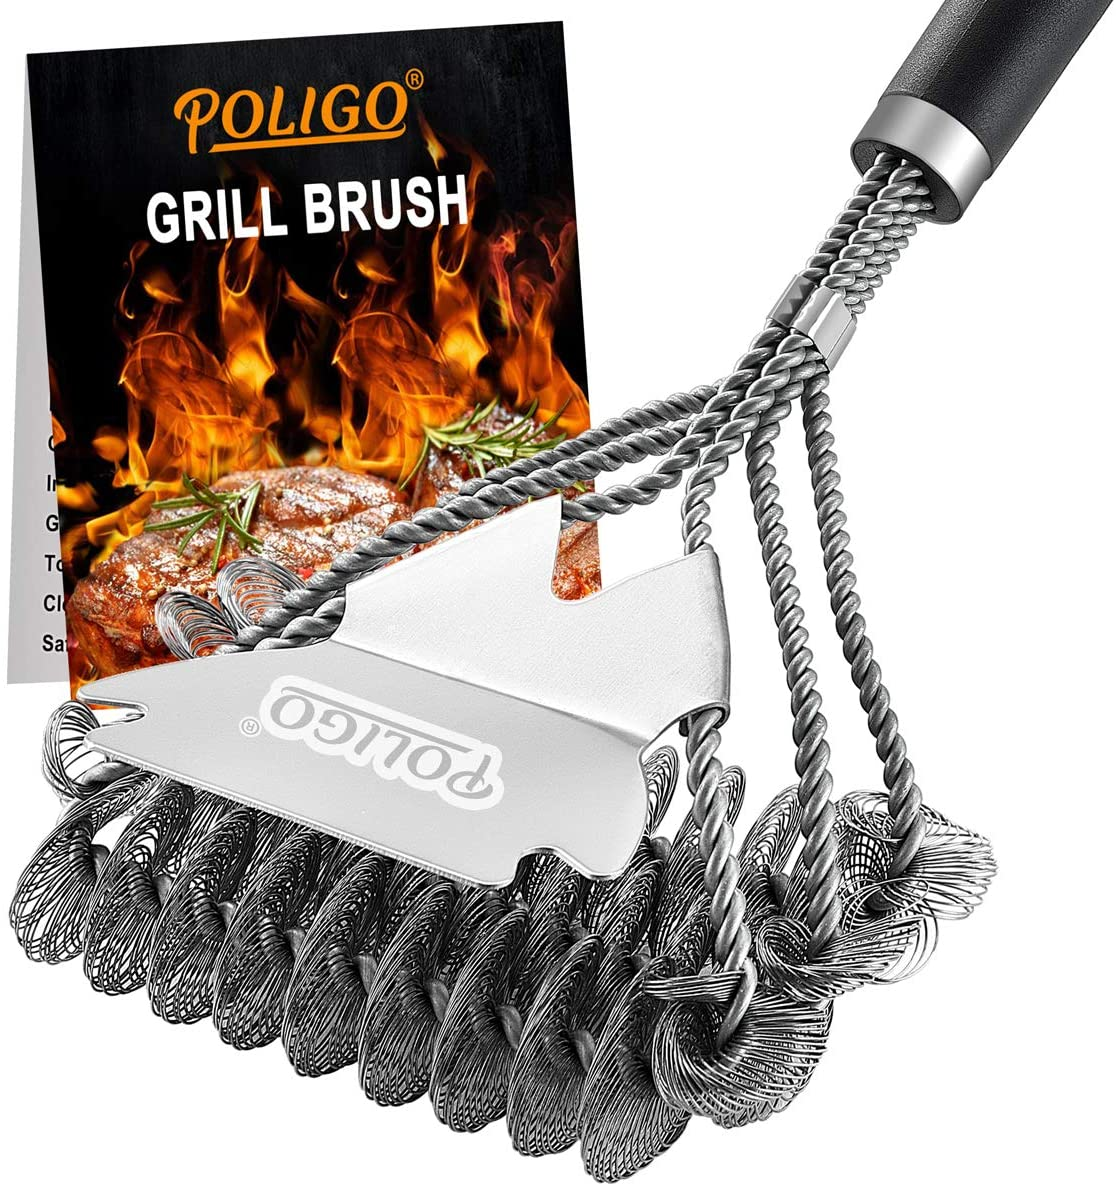 POLIGO BBQ Grill Cleaning Brush Bristle Free & Scraper - Triple Helix Design Barbecue Cleaner - Non-Bristle Grill Brush and Scraper Safe for Gas Charcoal Porcelain Grills - Ideal Grill Tools Gift: Home & Kitchen